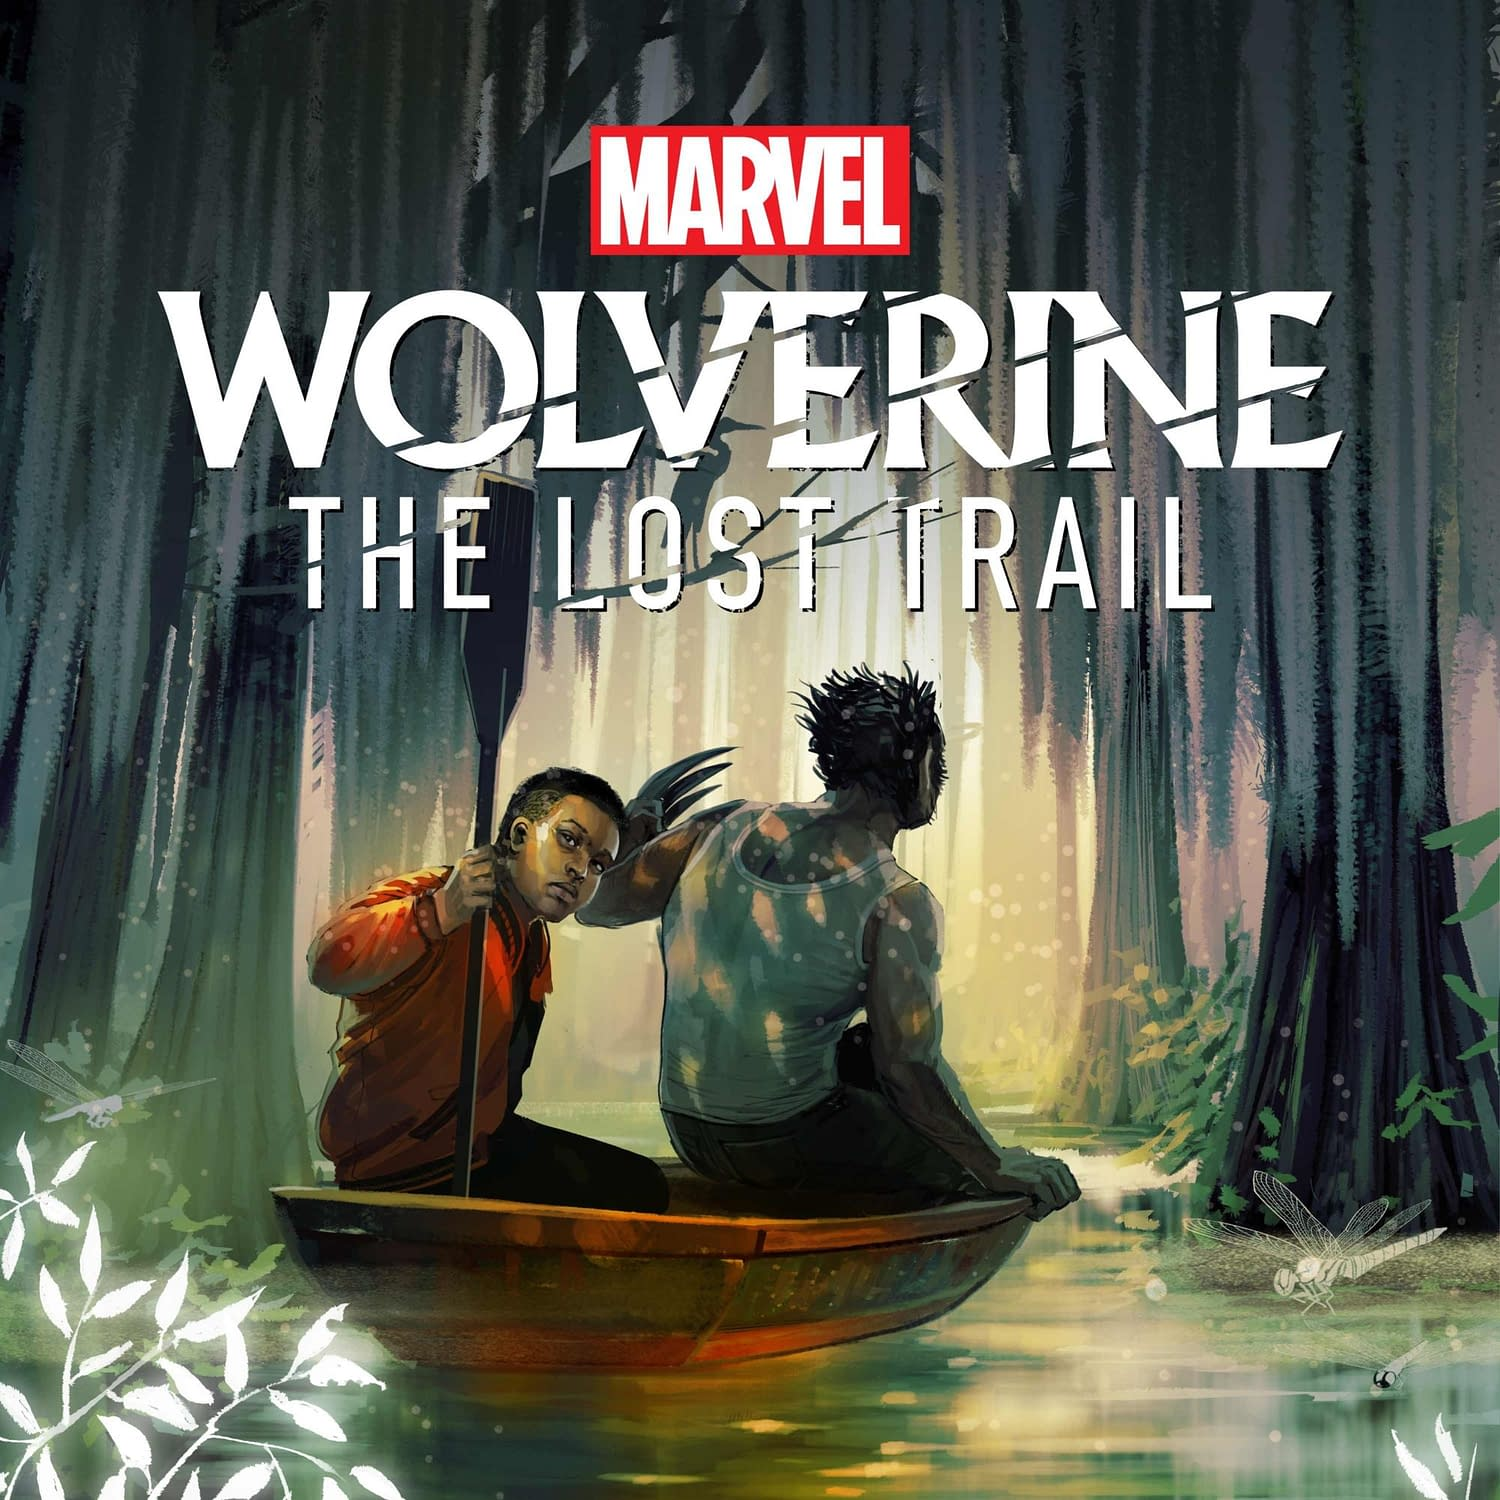 marvels wolverine lost trail